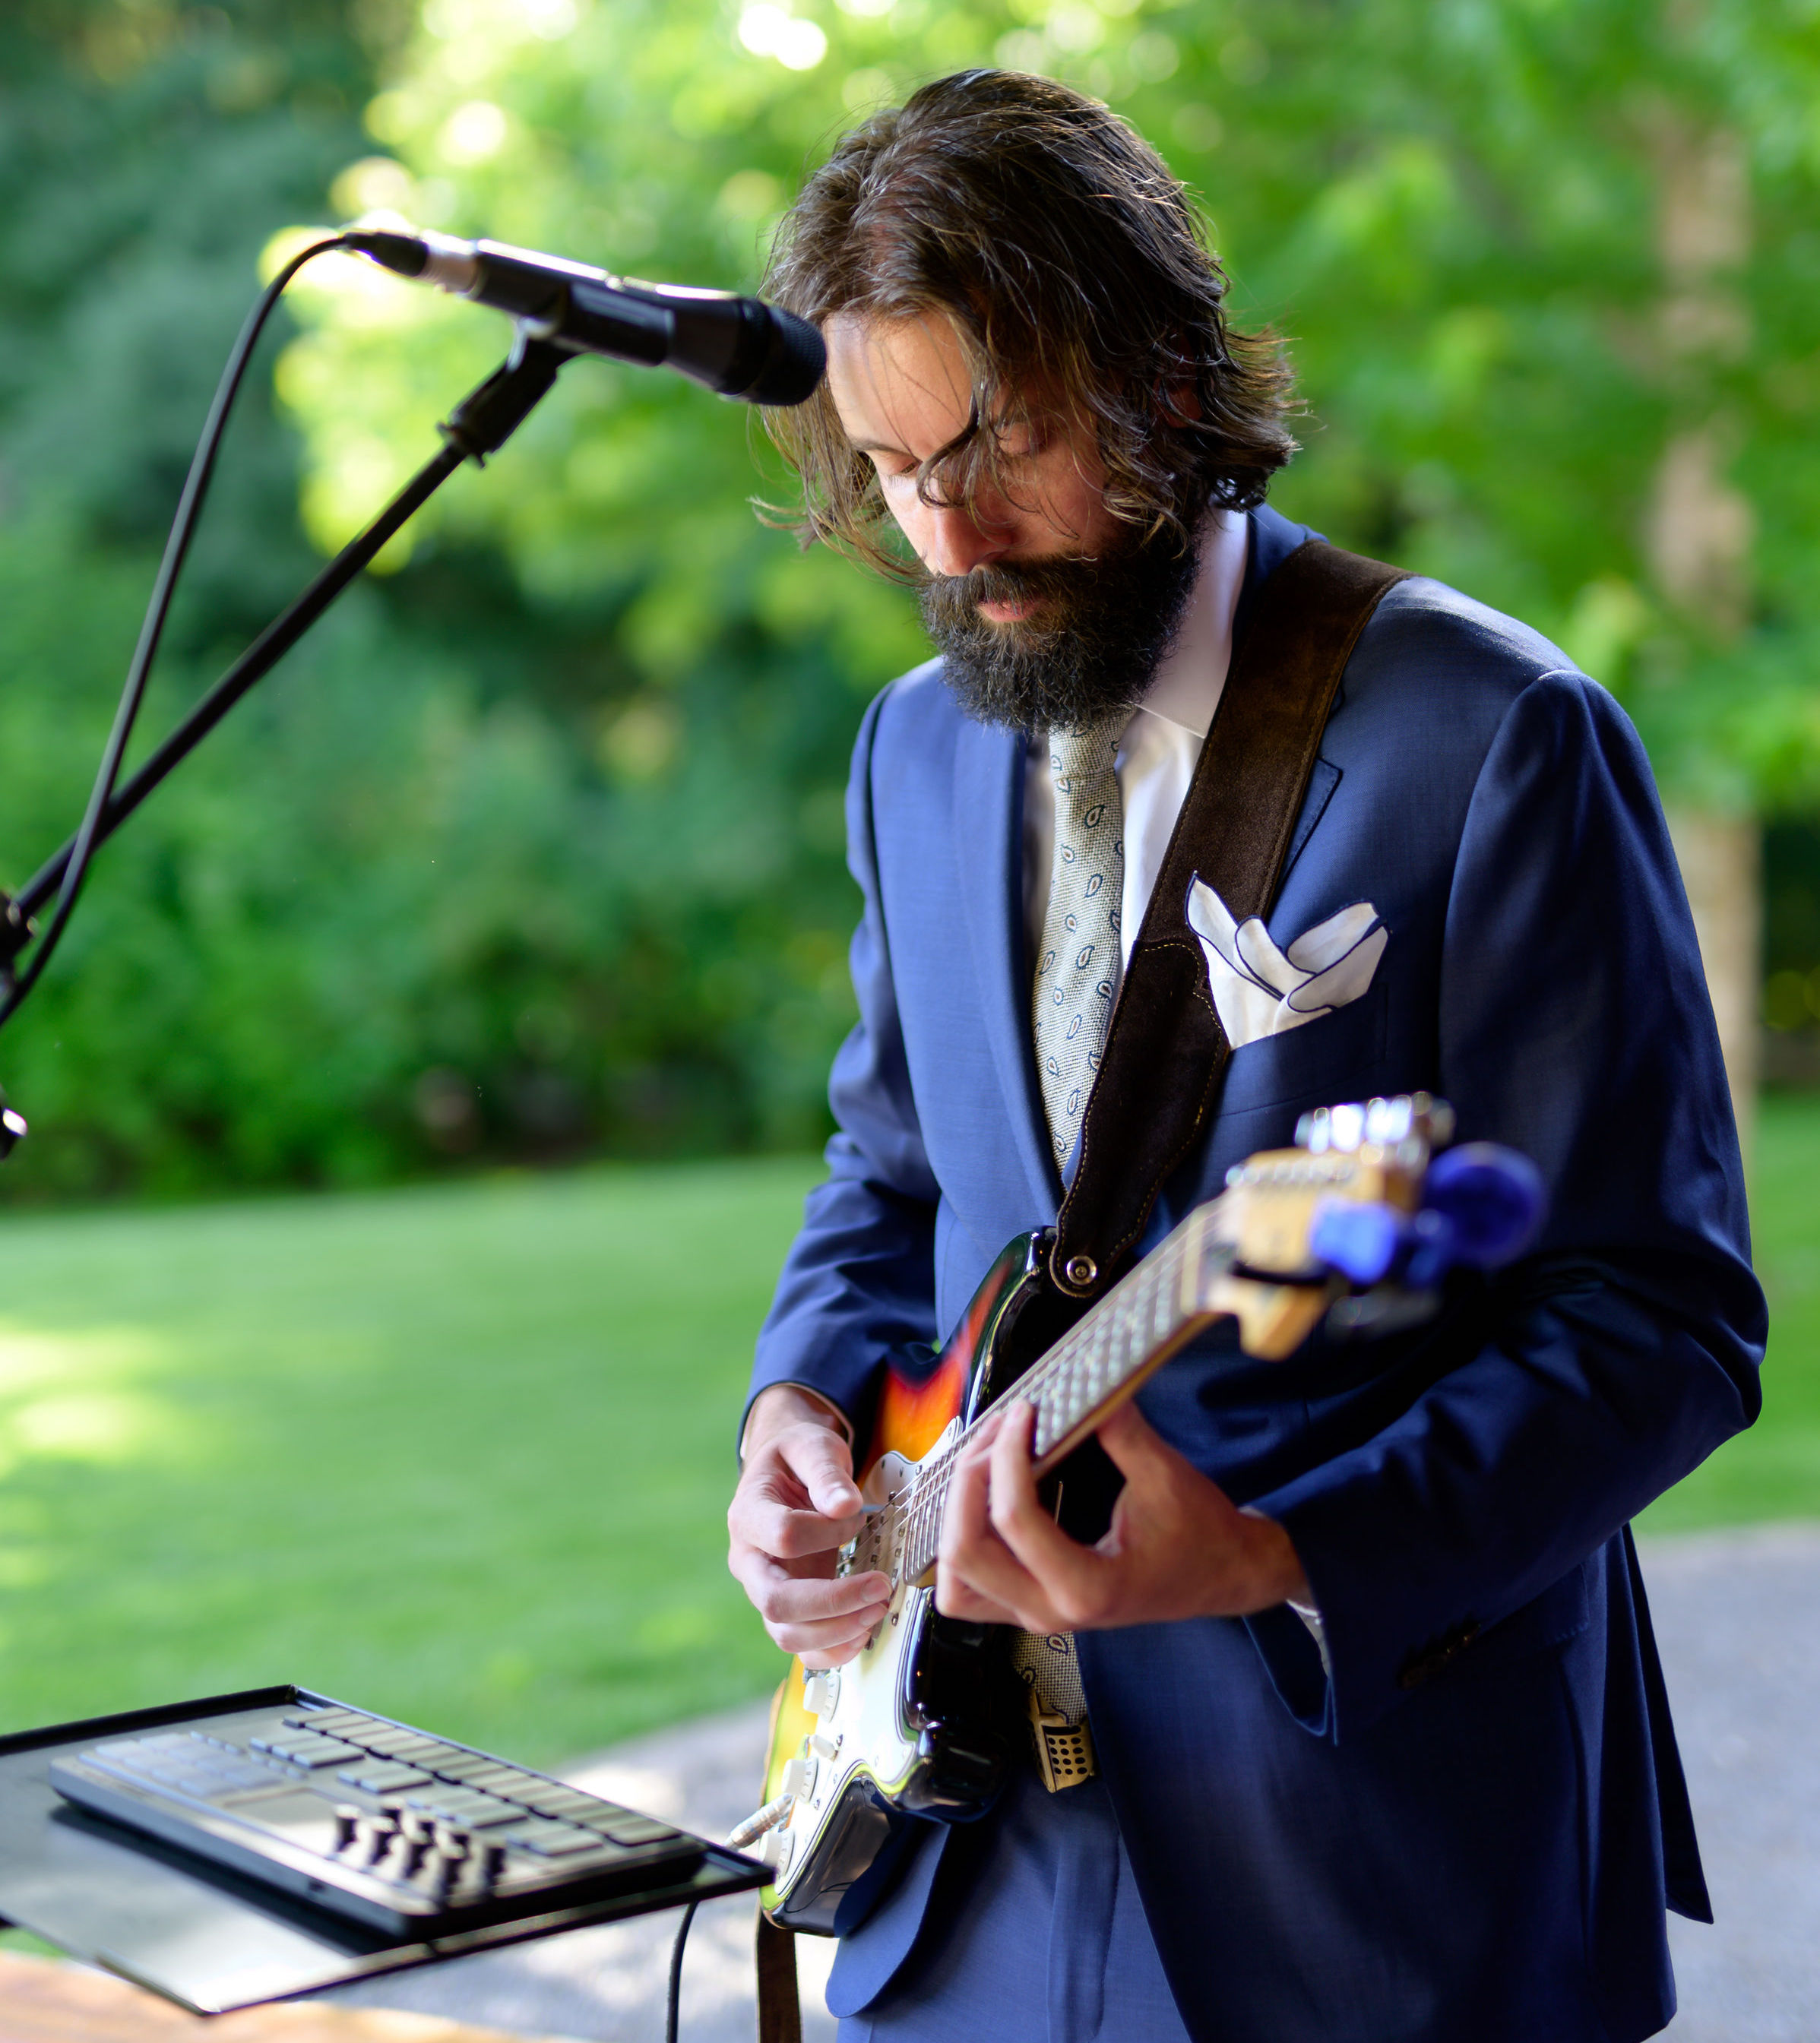 Guitar and keyboard at a wedding